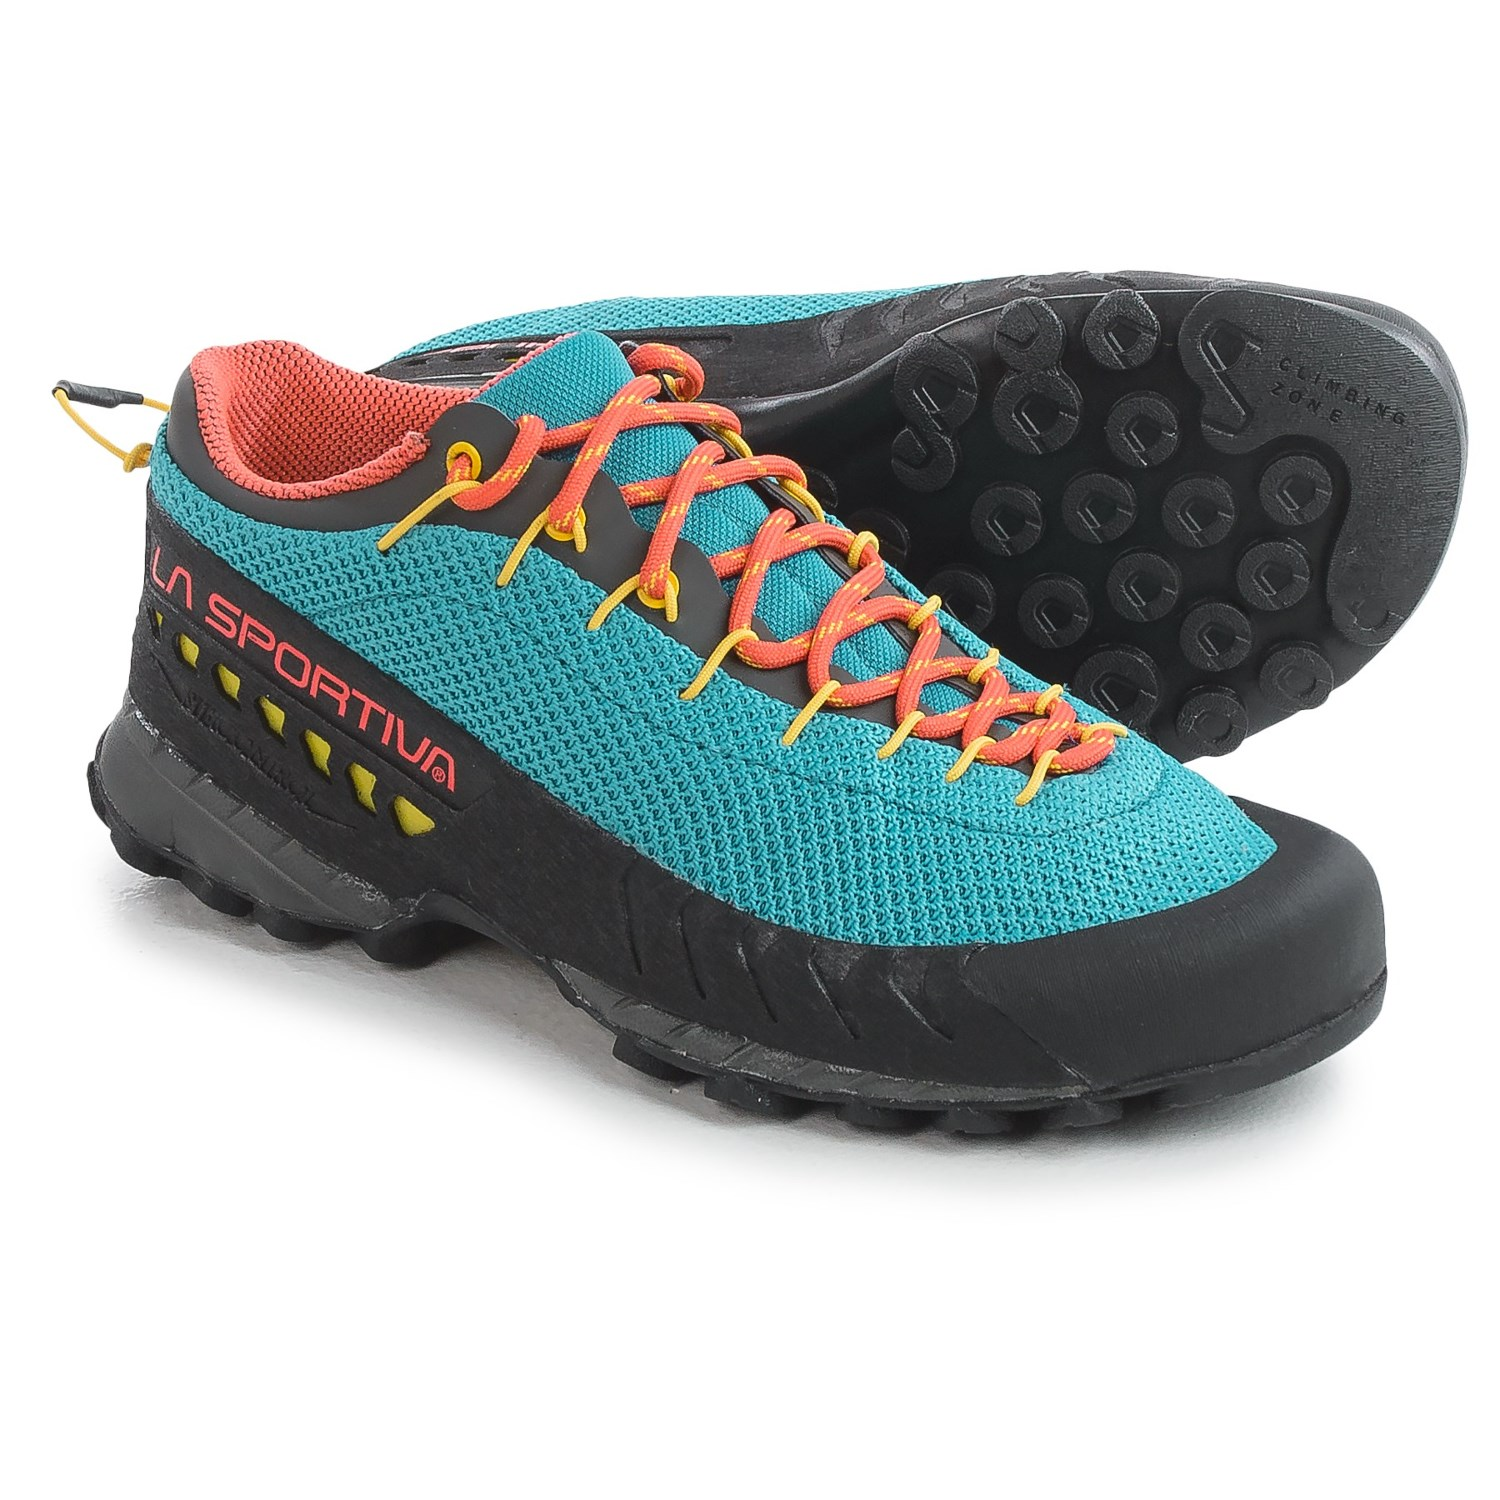 la sportiva tx3 approach shoes for save 46